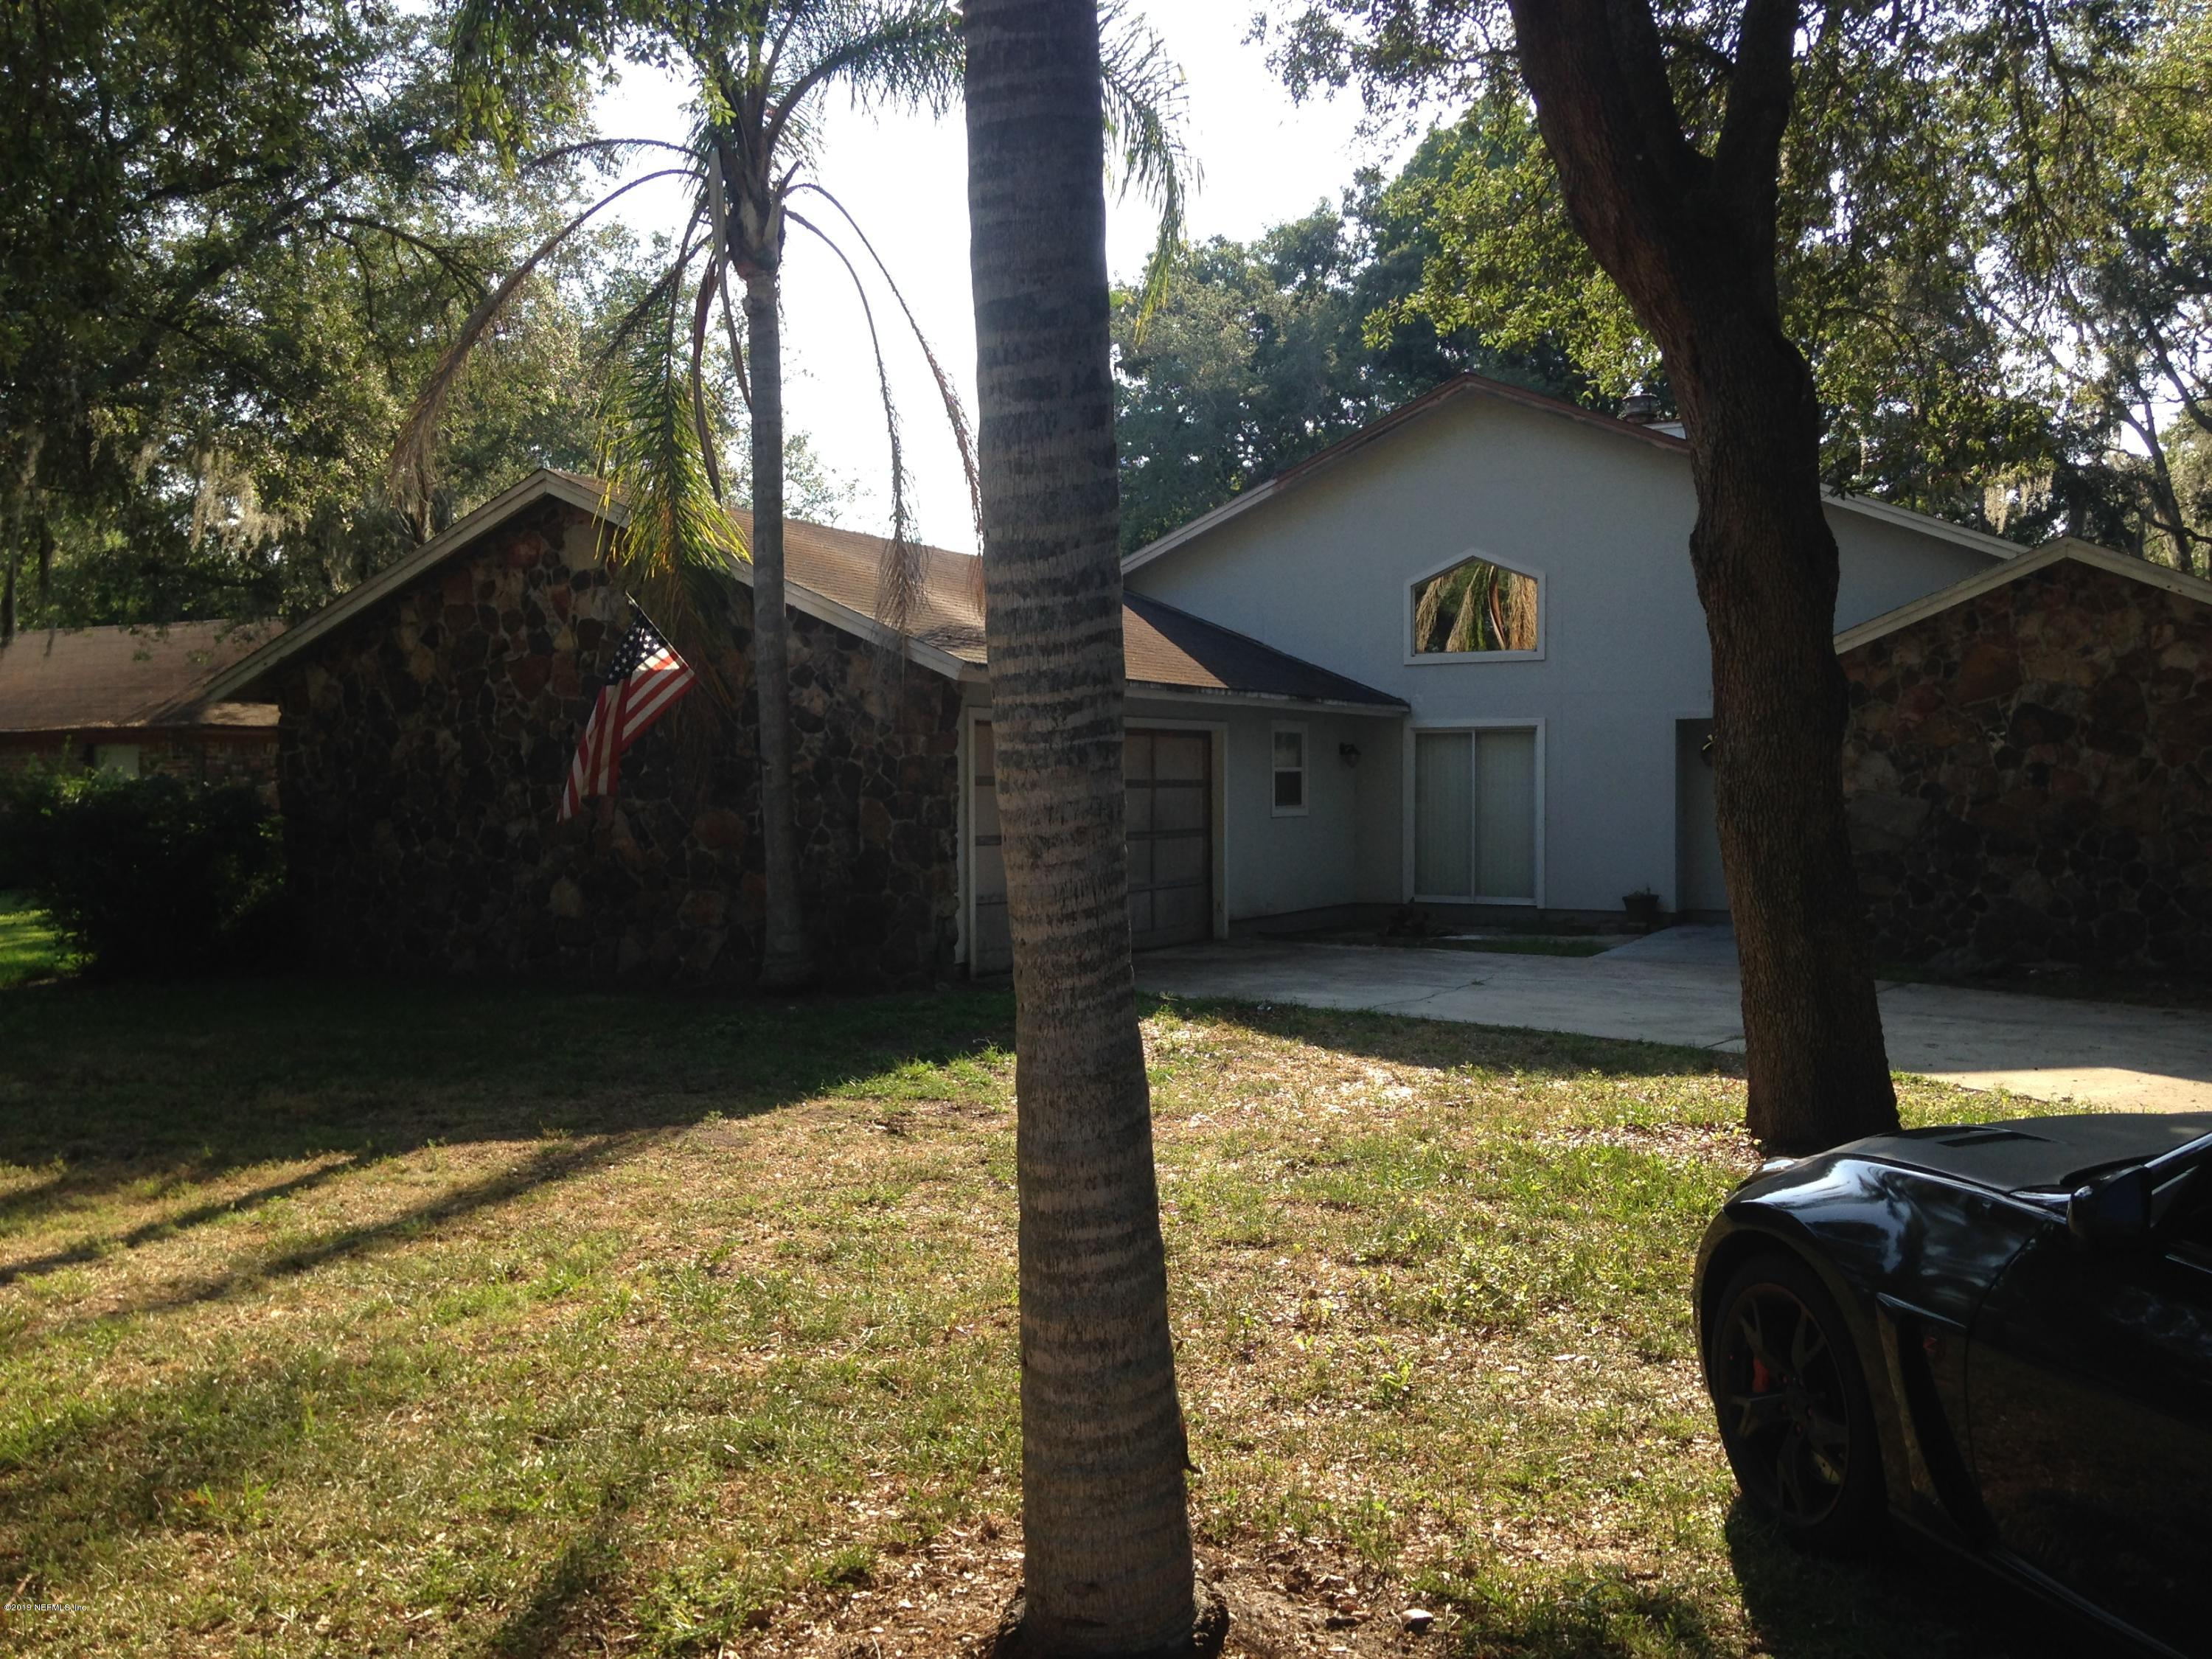 1114 HAMLET, NEPTUNE BEACH, FLORIDA 32266, 3 Bedrooms Bedrooms, ,2 BathroomsBathrooms,Residential - single family,For sale,HAMLET,997839